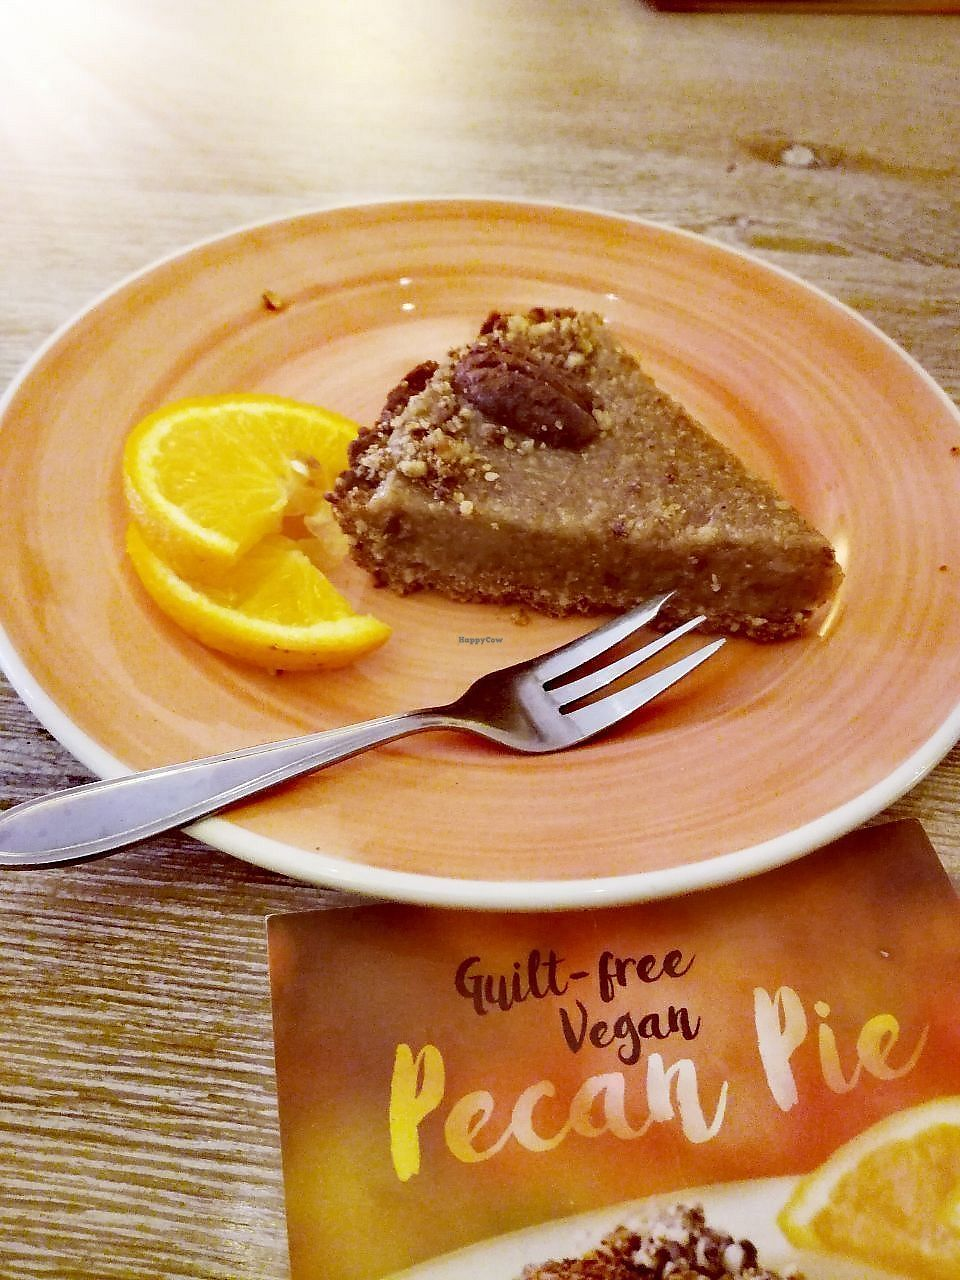 """Photo of Bagels & Beans  by <a href=""""/members/profile/happyowl"""">happyowl</a> <br/>Vegan pecan pie <br/> July 16, 2017  - <a href='/contact/abuse/image/64943/281147'>Report</a>"""